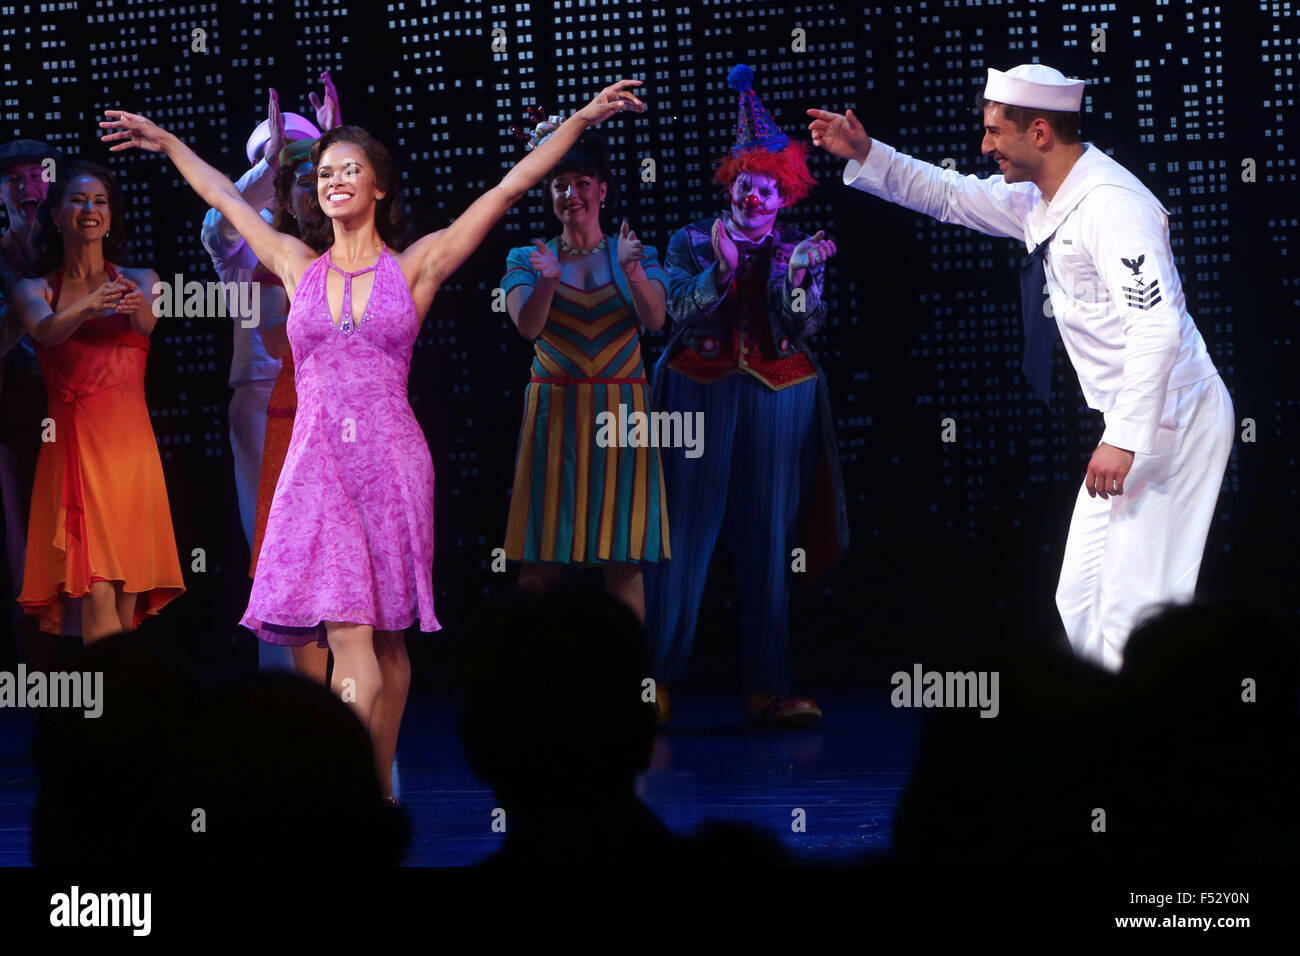 Misty Copeland makes her Broadway debut in On The Town at the Lyric Theatre - Curtain Call.  Featuring: Misty Copeland, - Stock Image